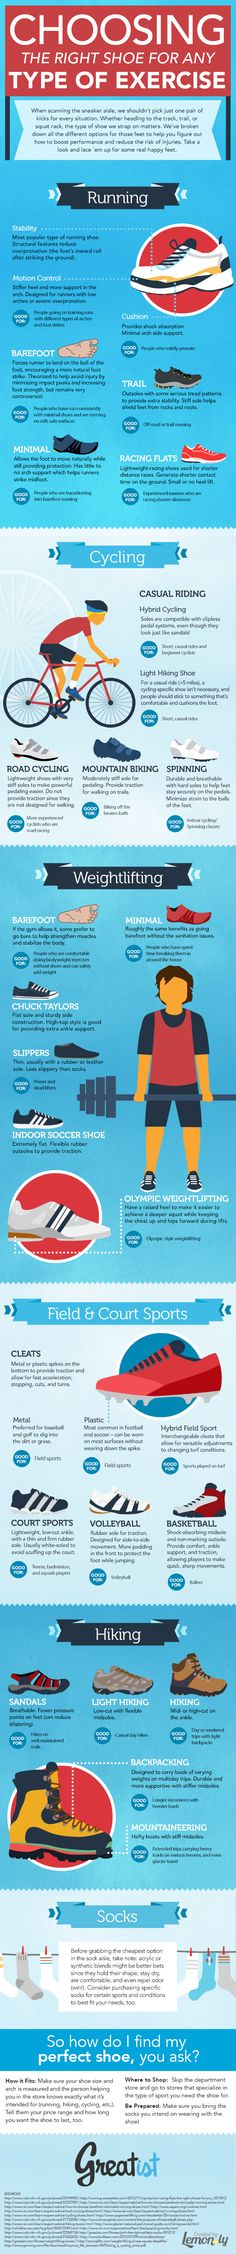 Choosing the Right Shoe for Any Activity